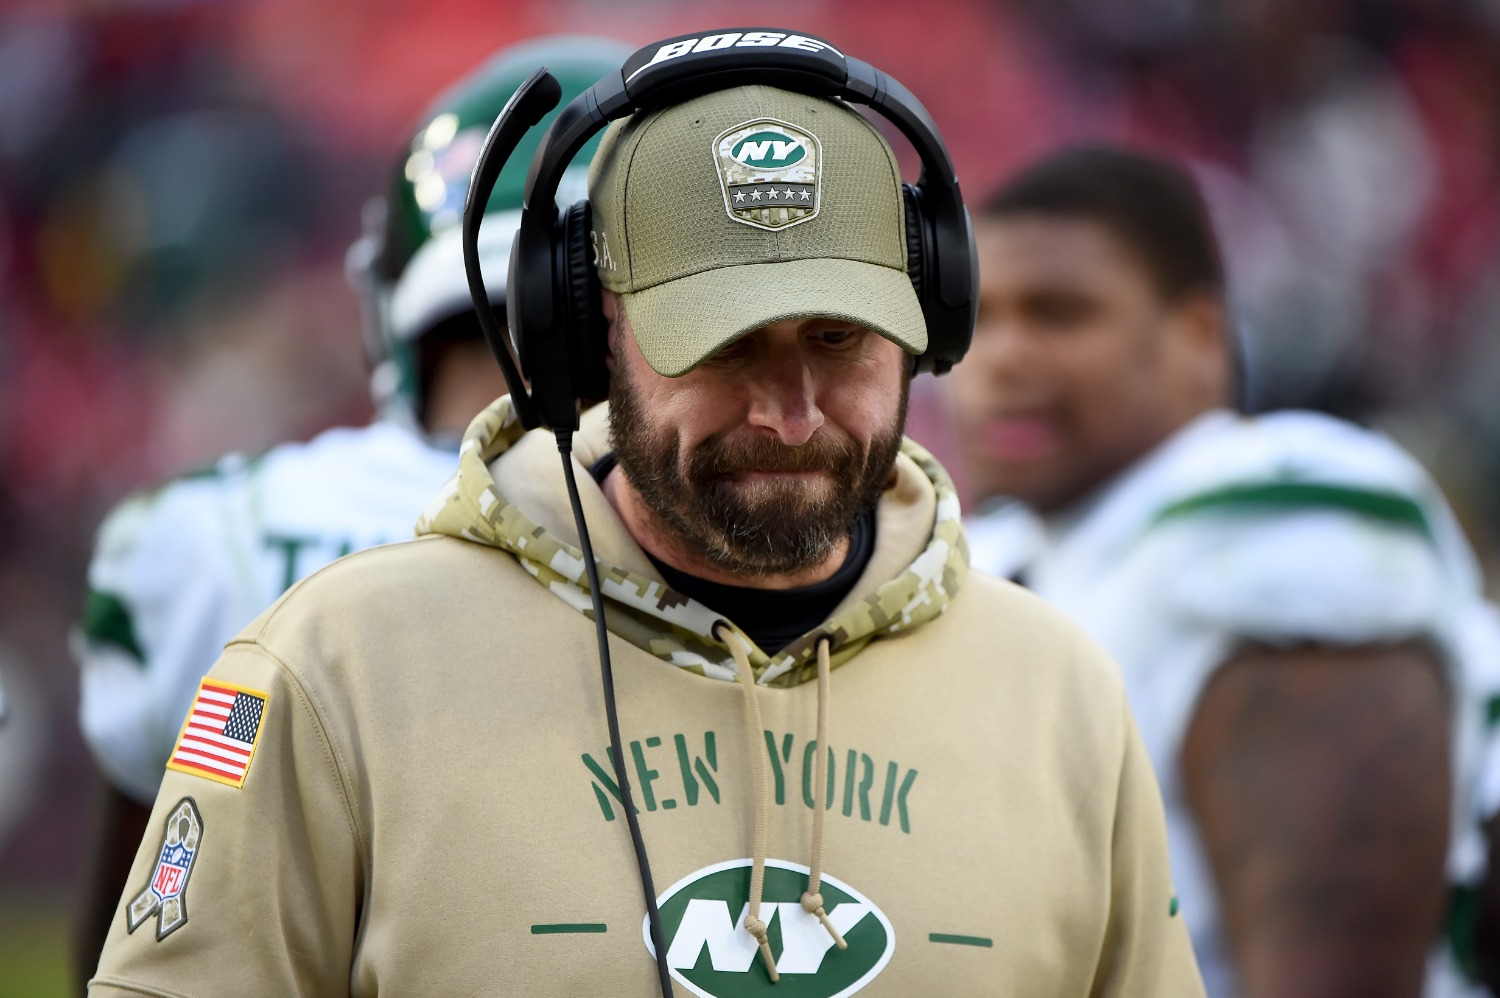 Jets head coach Adam Gase just committed the ultimate fireable offense. Will NY fire Gase in order to save Sam Darnold's career?